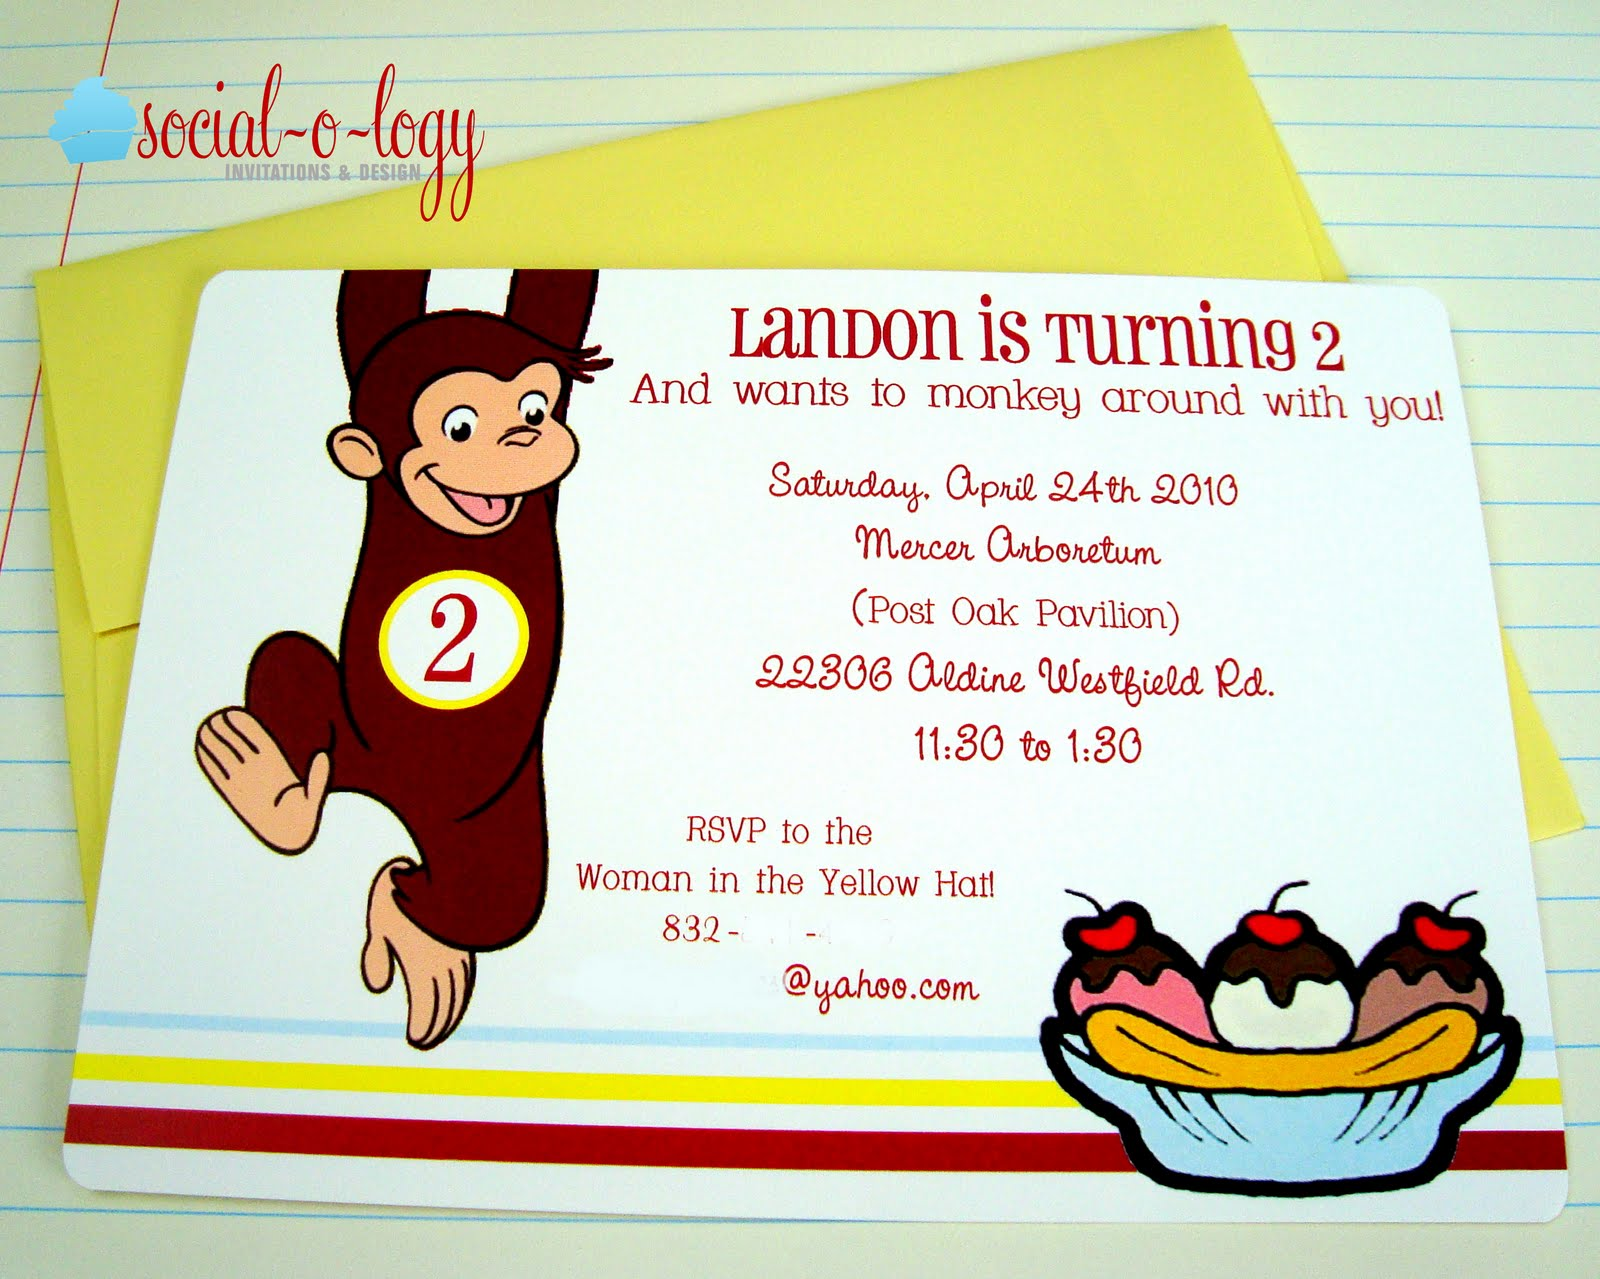 Social o logy Invitations and Design Landon is 2